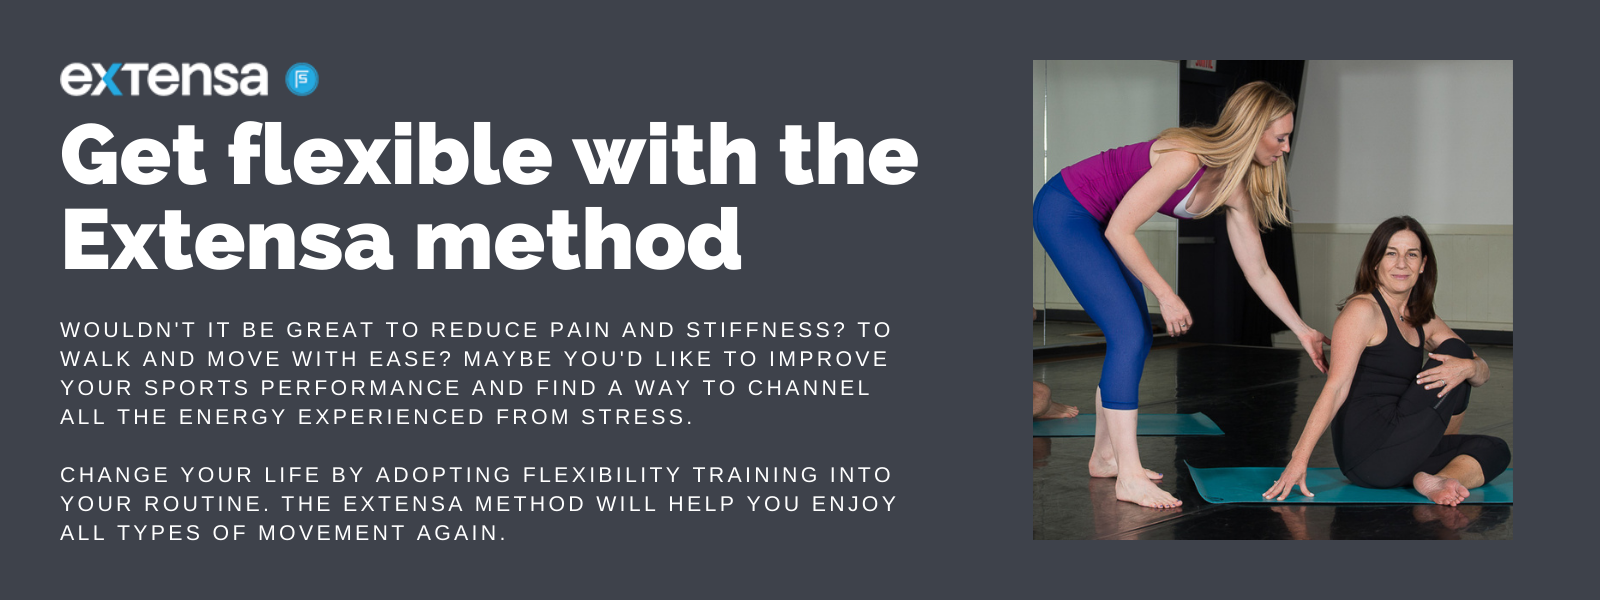 Get flexible with the Extensa method